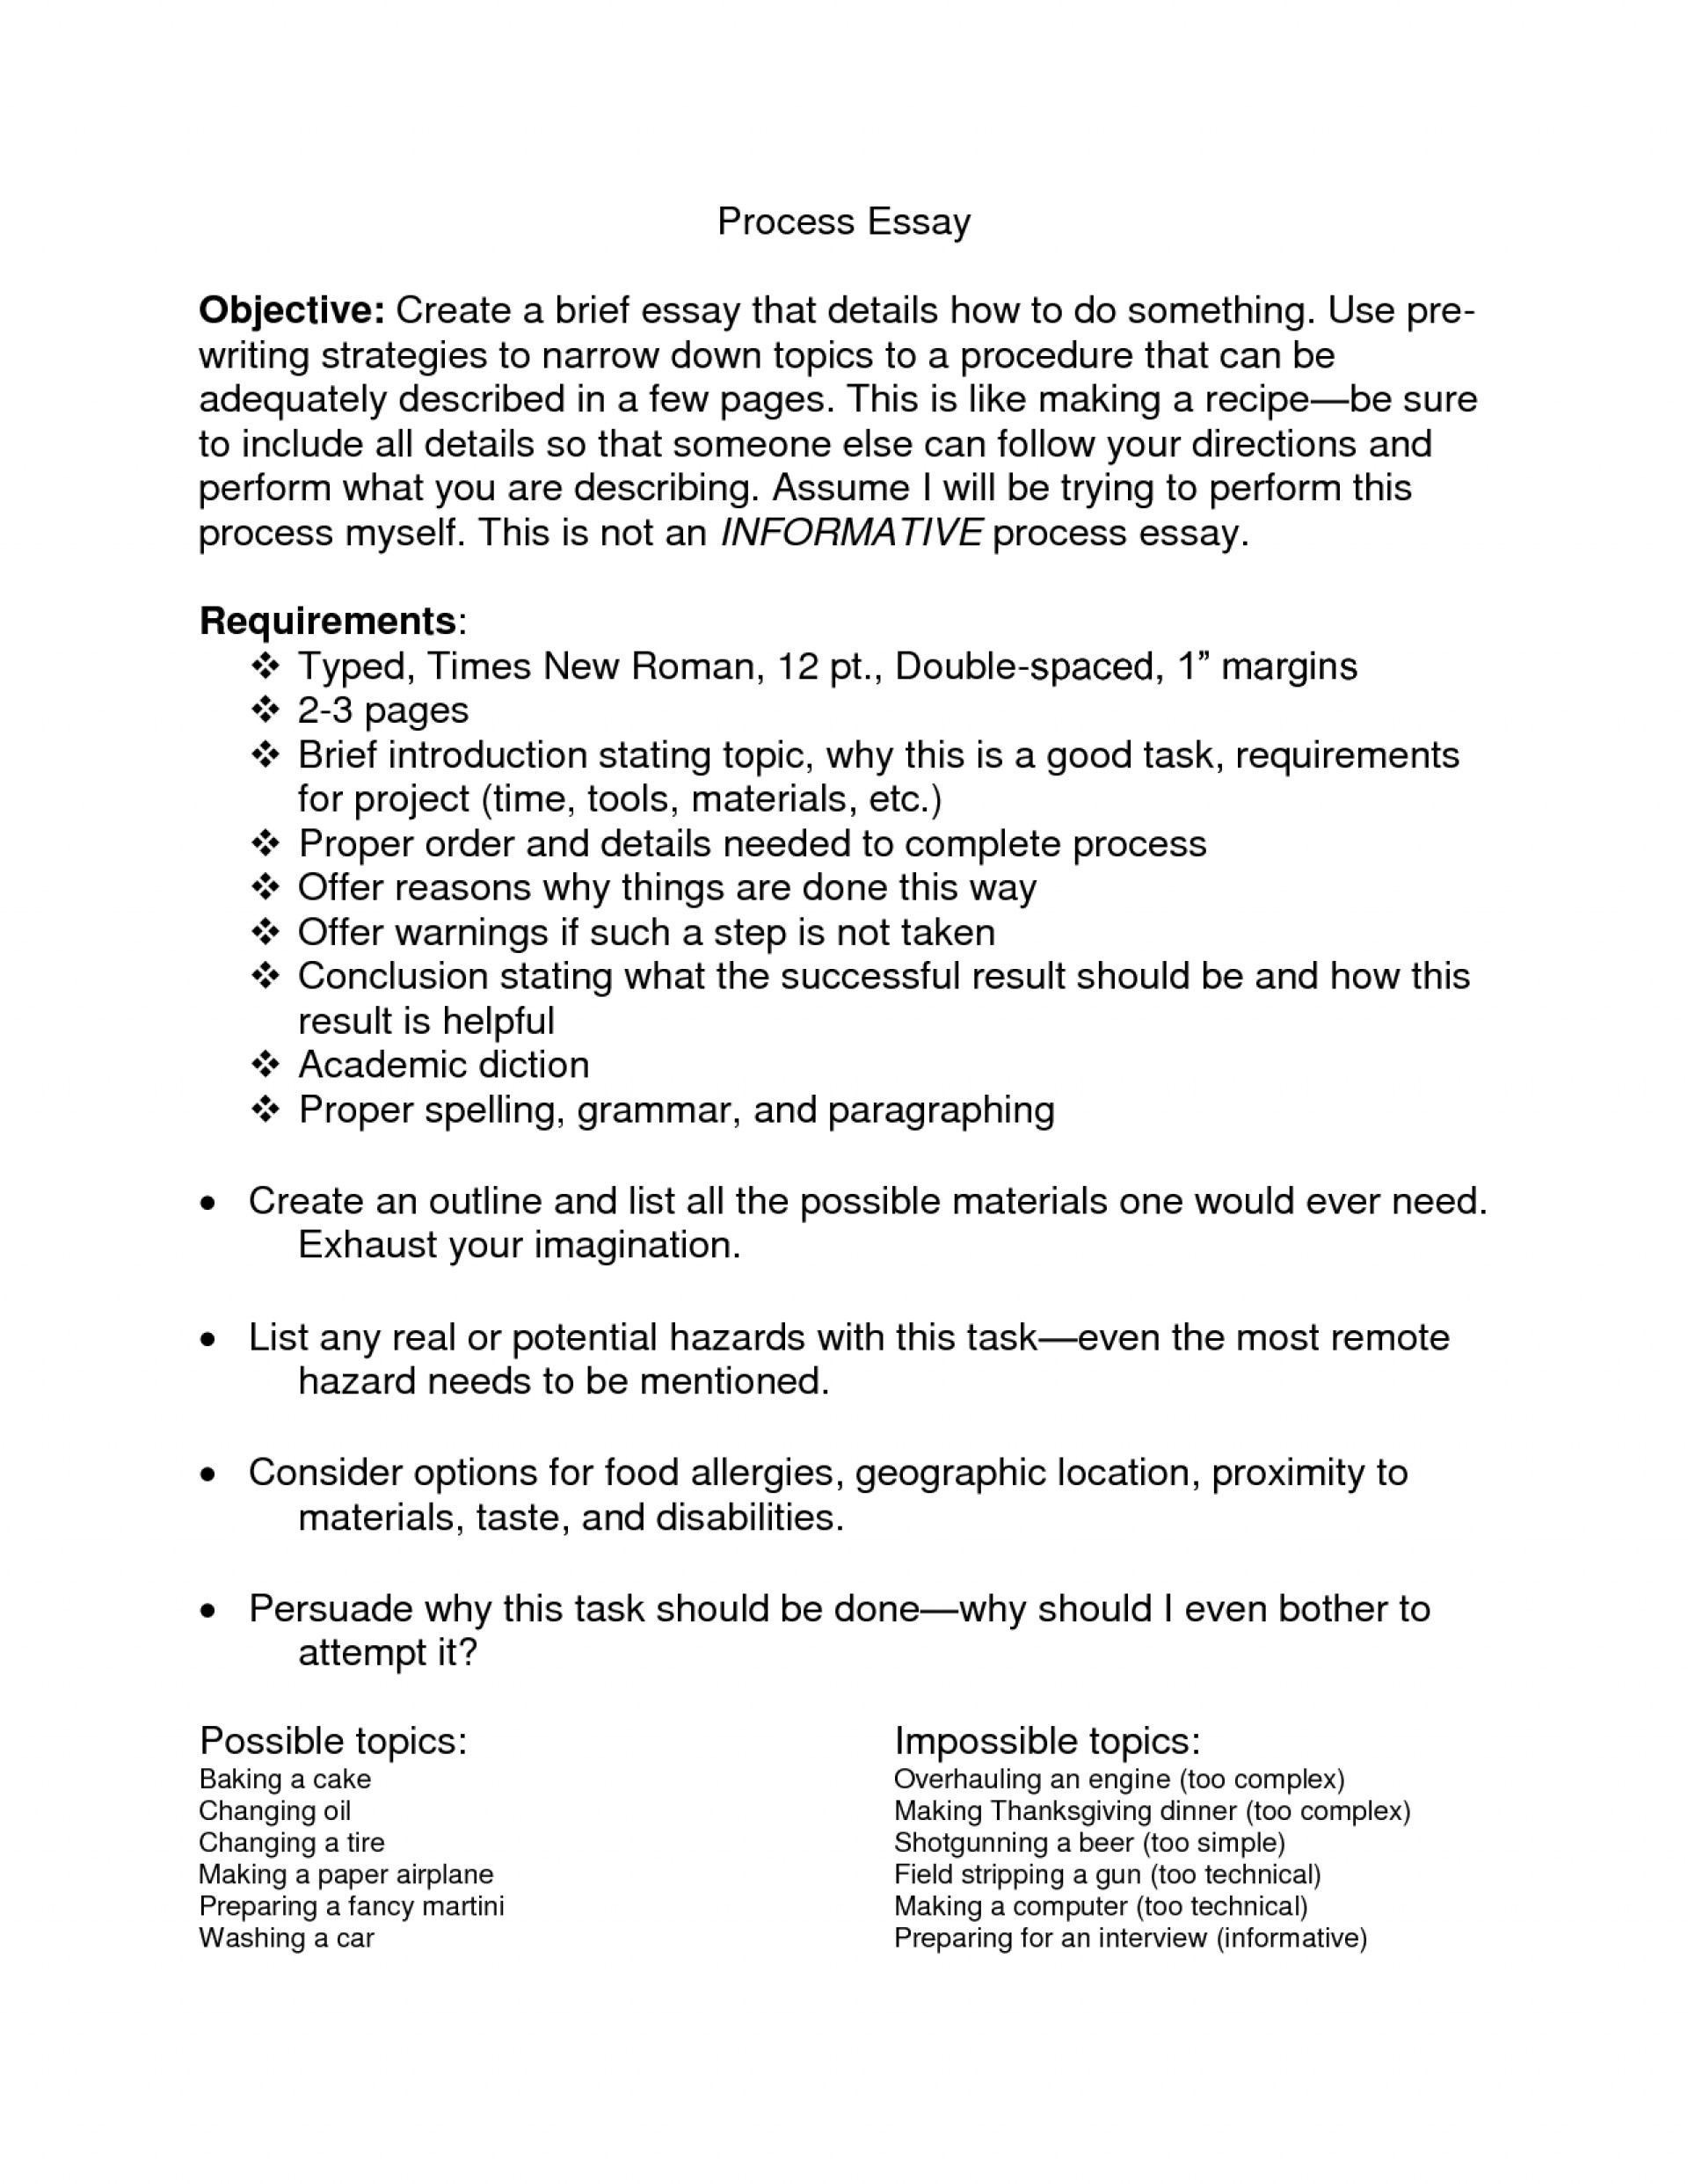 010 Processessay Writing Process Examples College Template Lesson Plan Ppt Leo Of Analysis Powerpoint In Third Person Pdf Sample Changing Tire Steps To Rubric Example How Write Top A Essay Ielts Thesis Statement For 1920